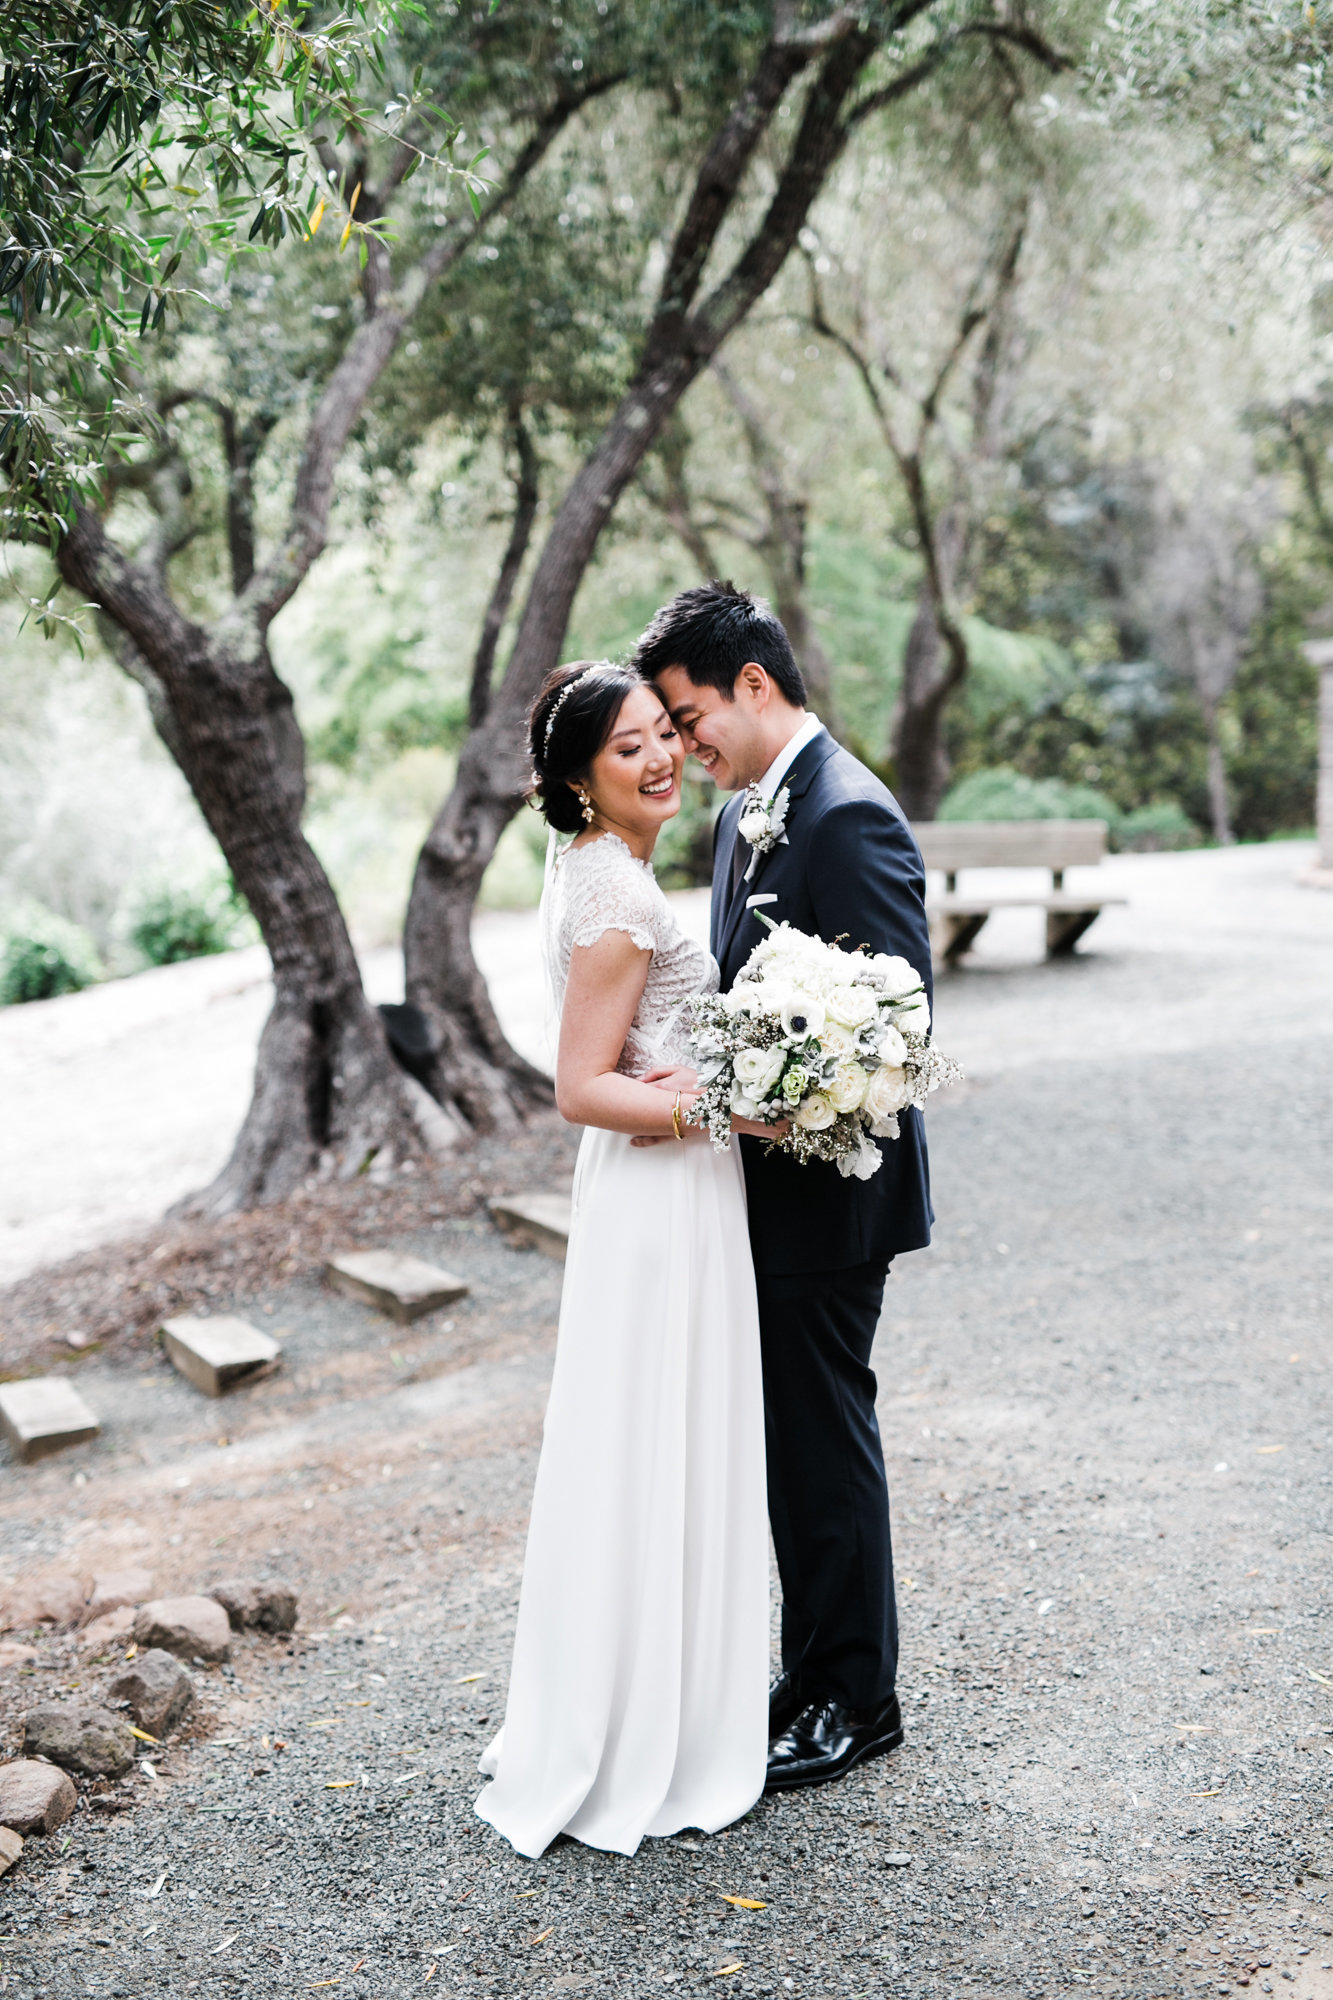 Ryan Greenleaf_Northern California Wedding Photographer_034Website_2017_Wedding7